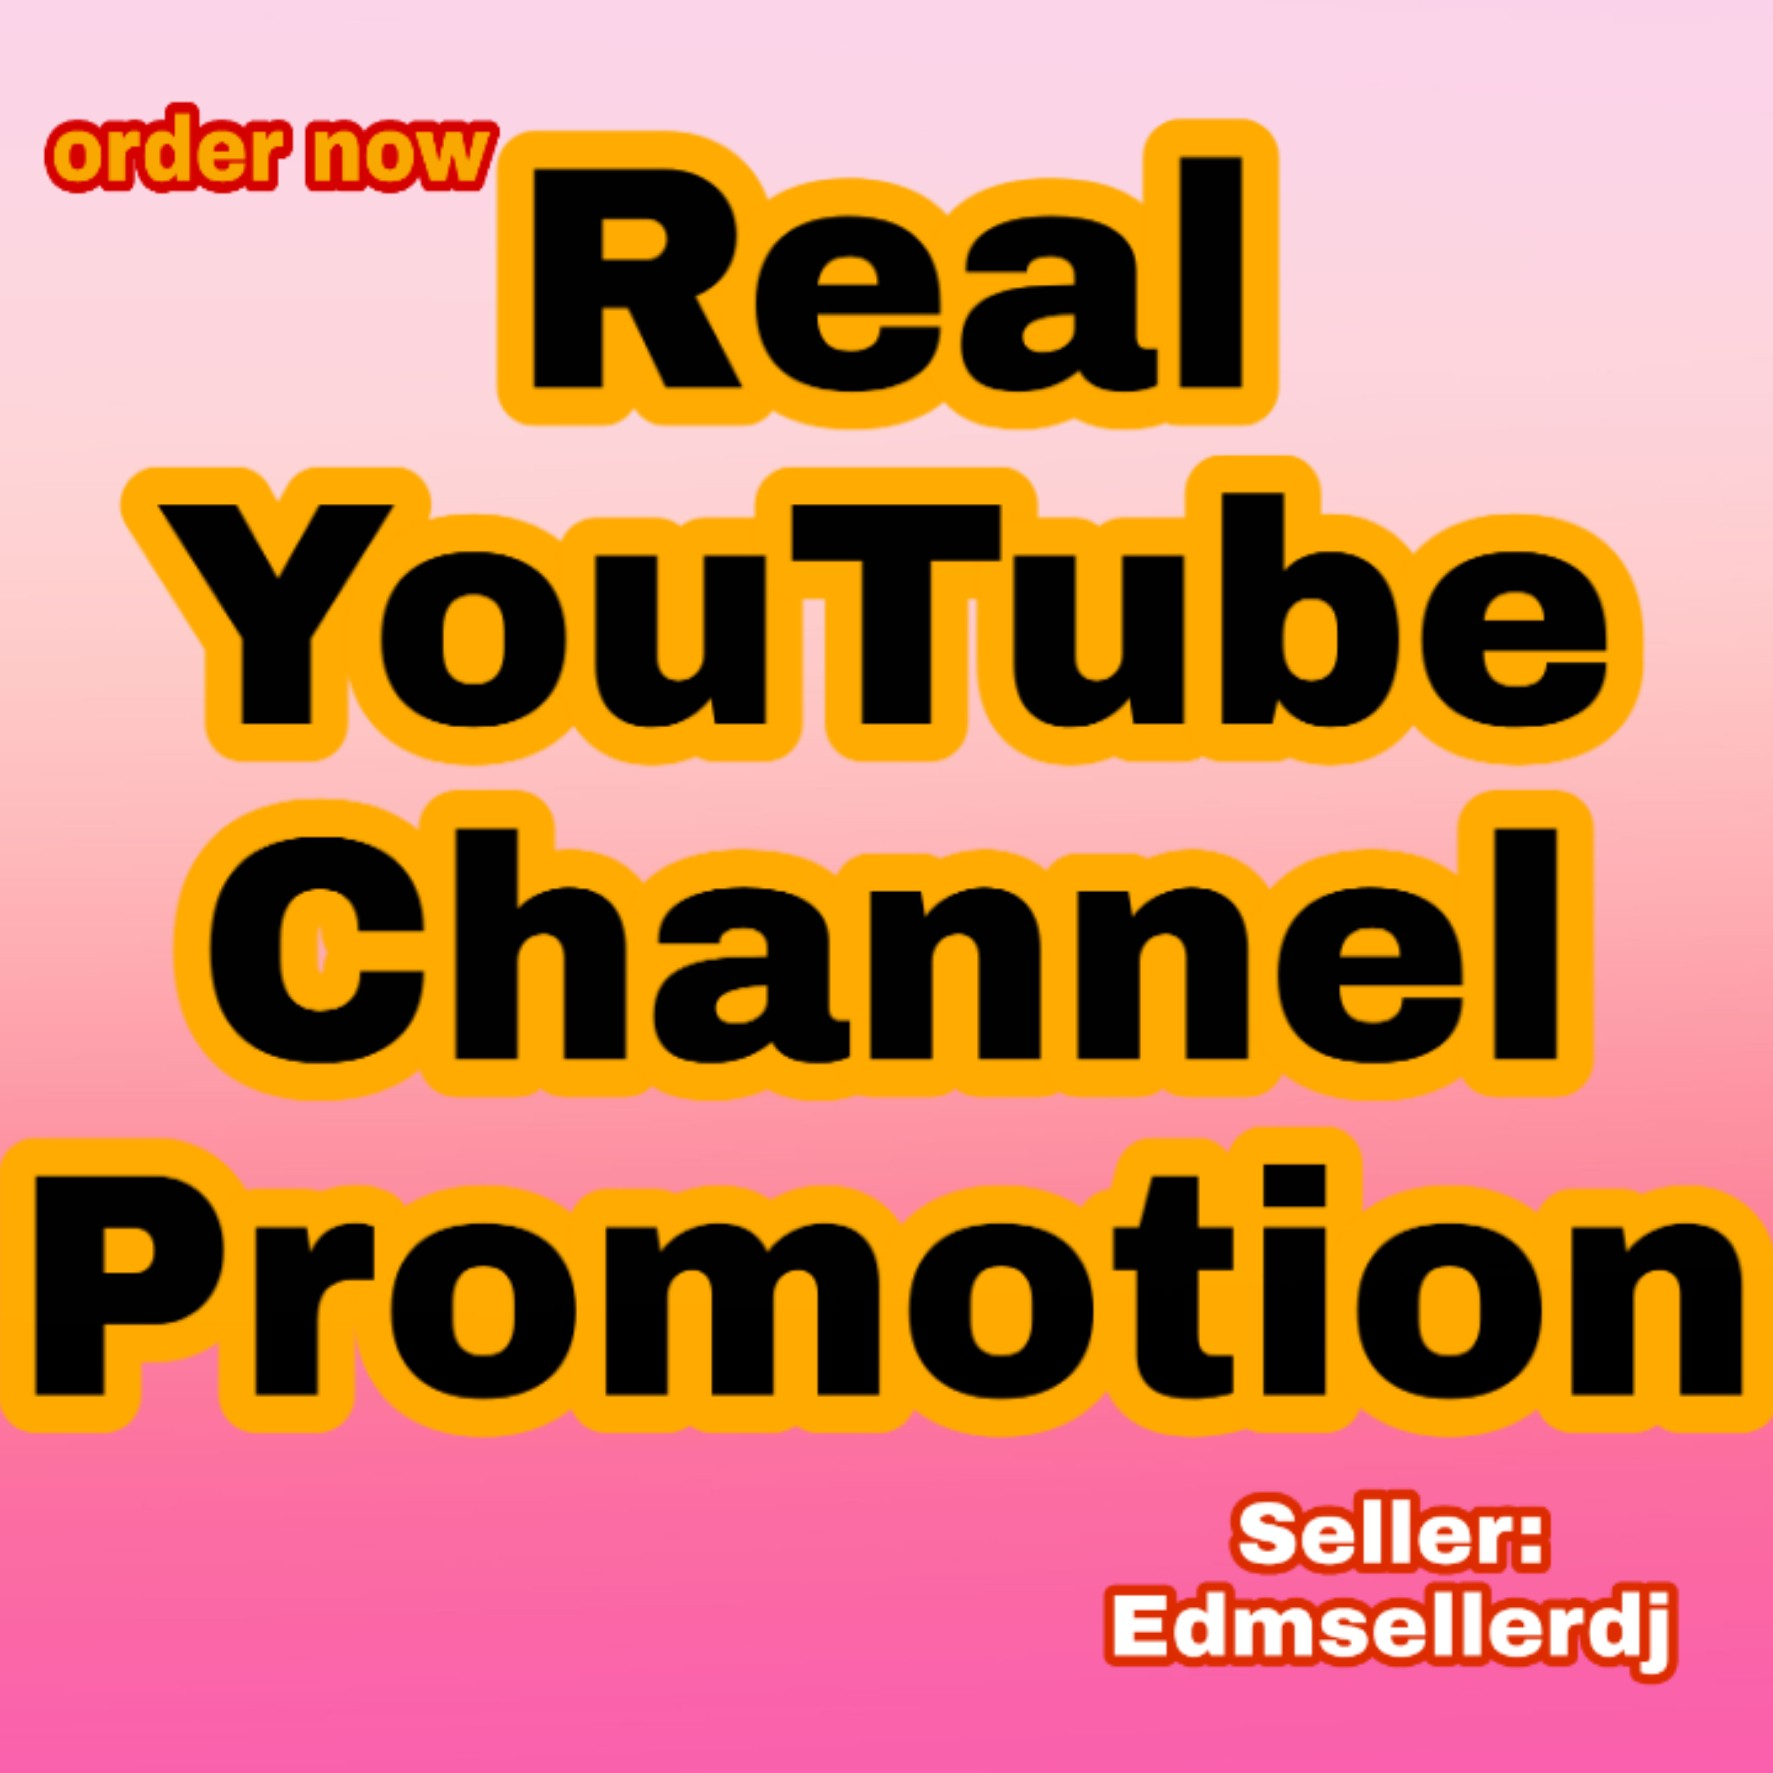 I Will Add Lasting YouTube Promotion